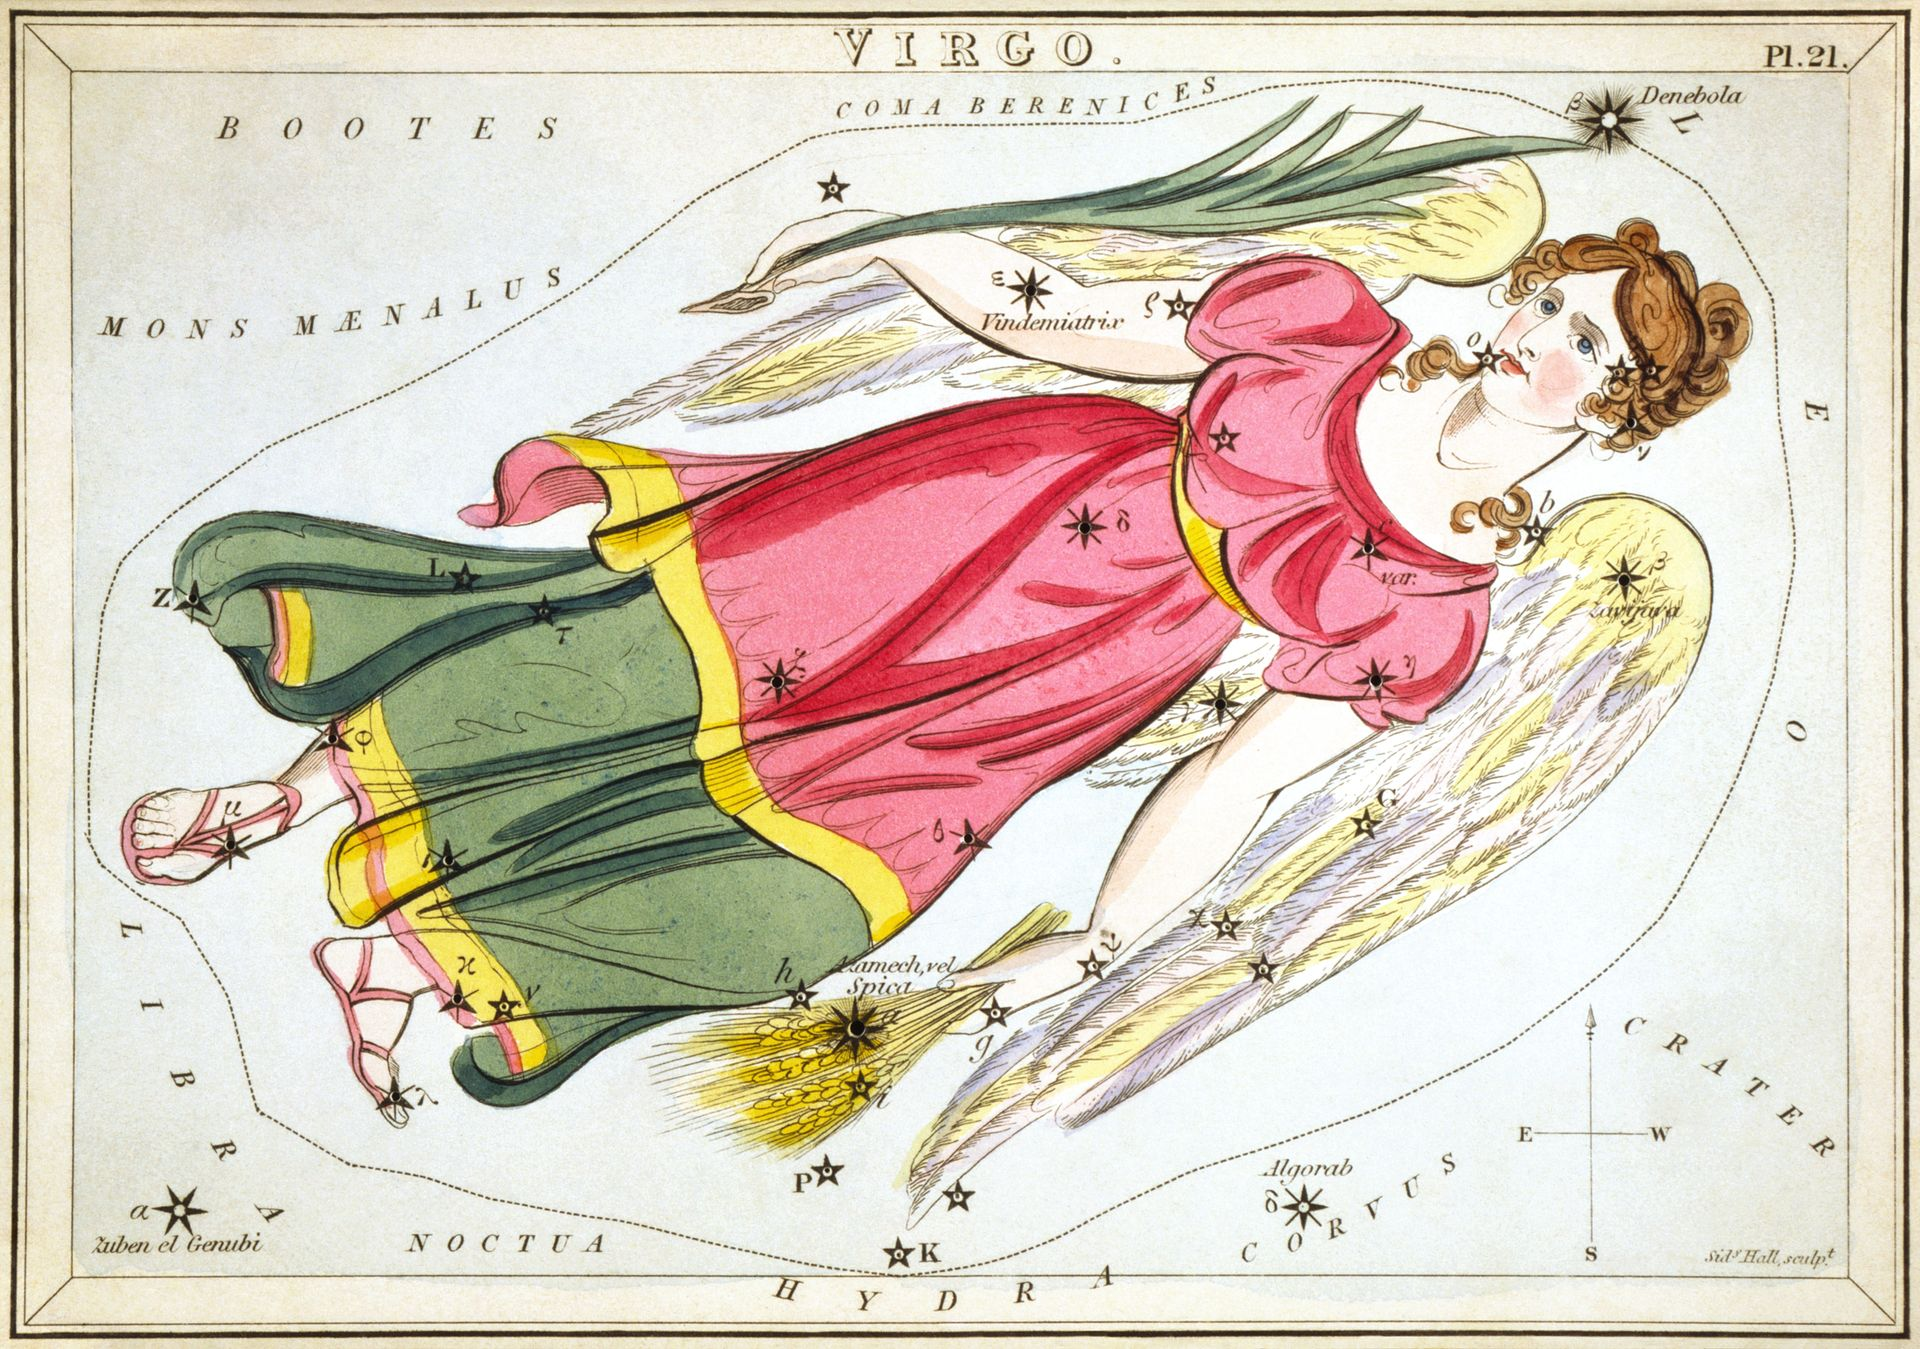 The Constellation Virgo